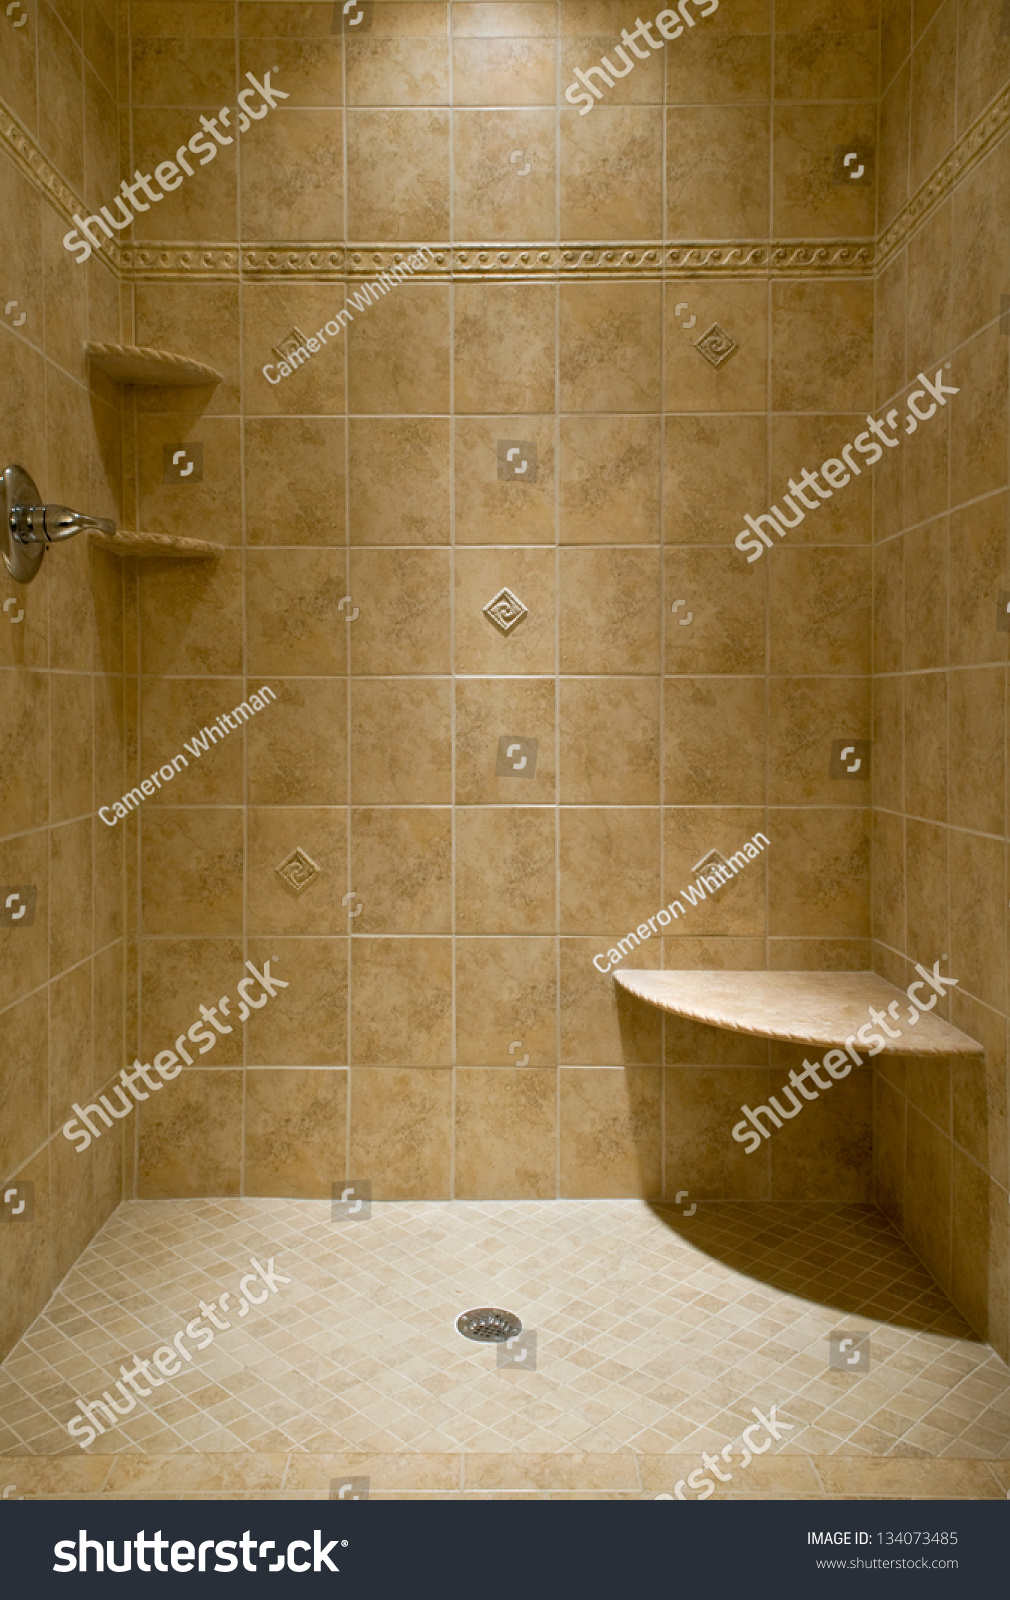 Custom Tiled Stand Shower Stock Photo (Royalty Free) 134073485 ...